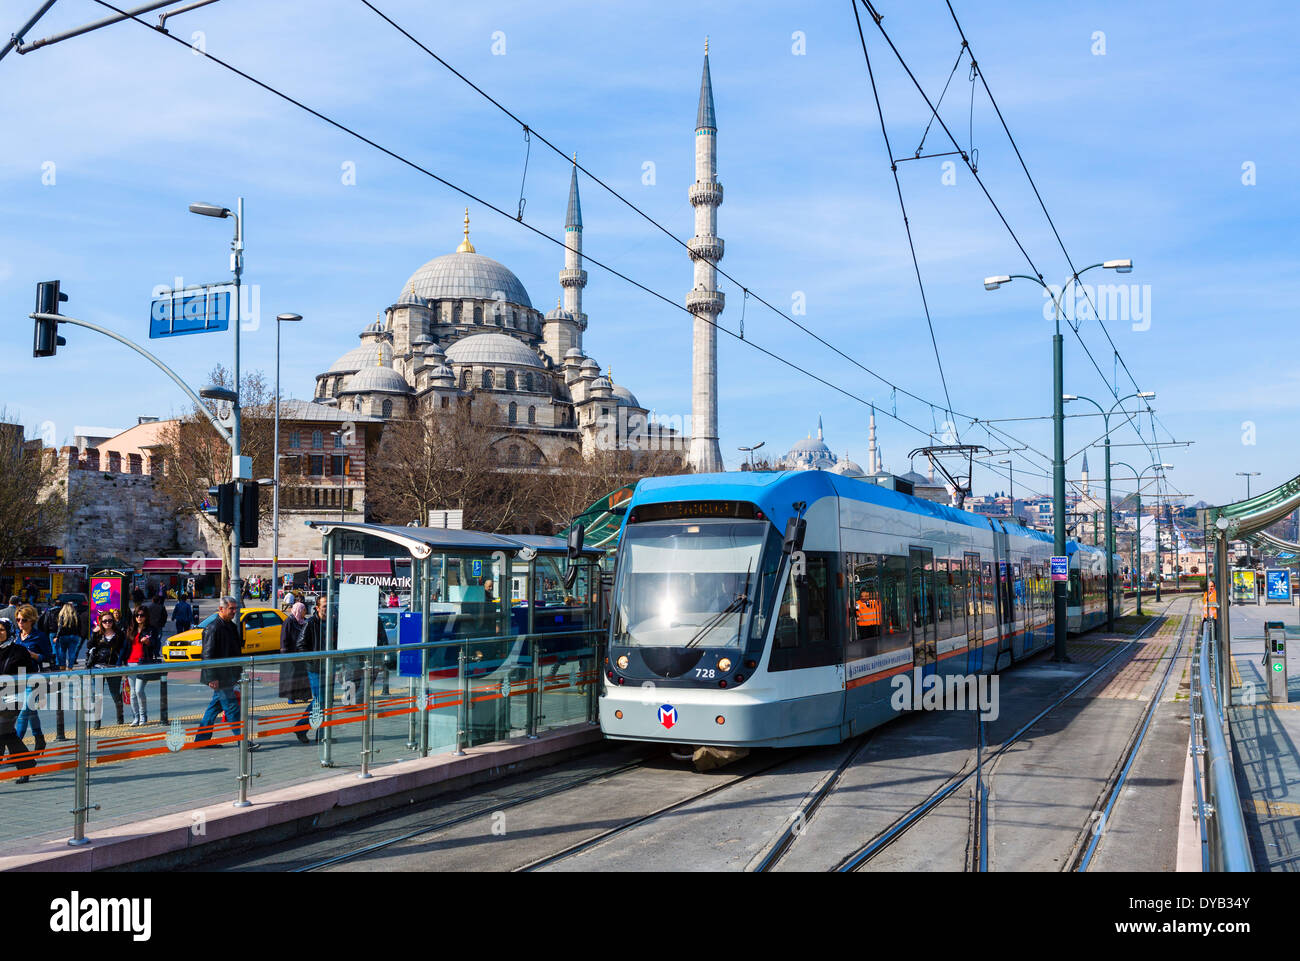 T1 tram at Eminonu with the New Mosque (Yeni Camii) behind, Istanbul, Turkey - Stock Image